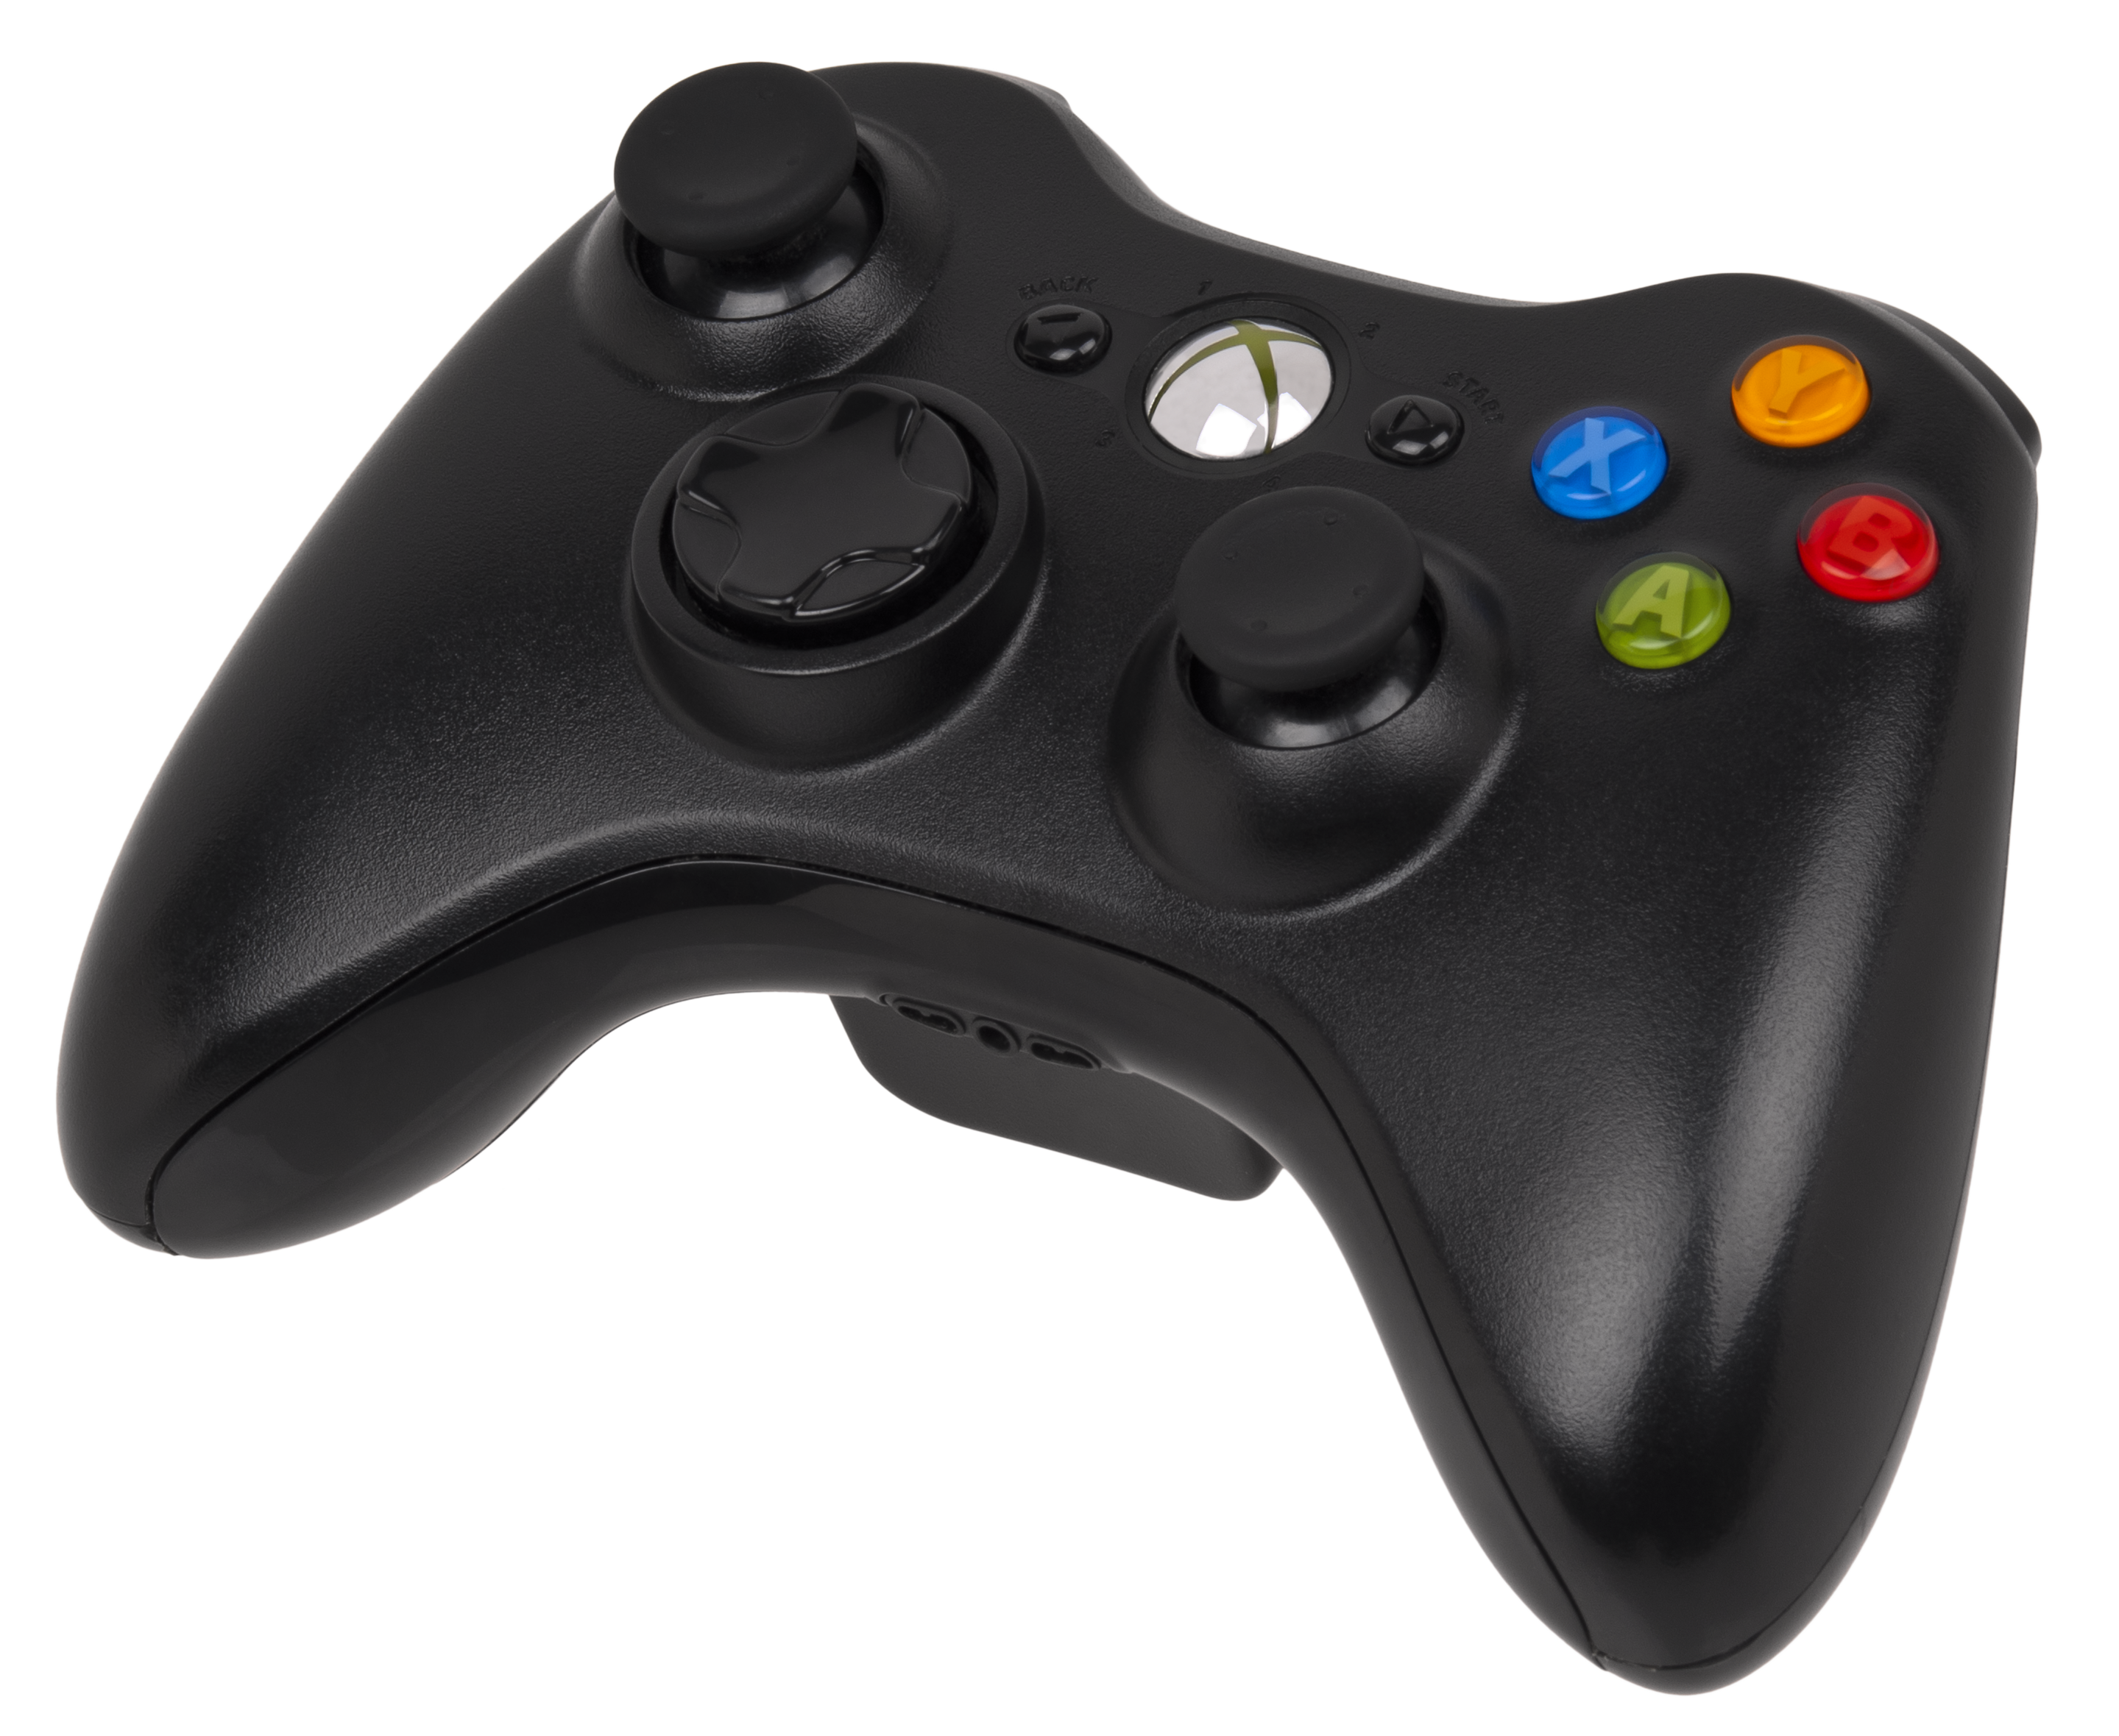 Xbox 360 Controller - The complete information and online sale with ...